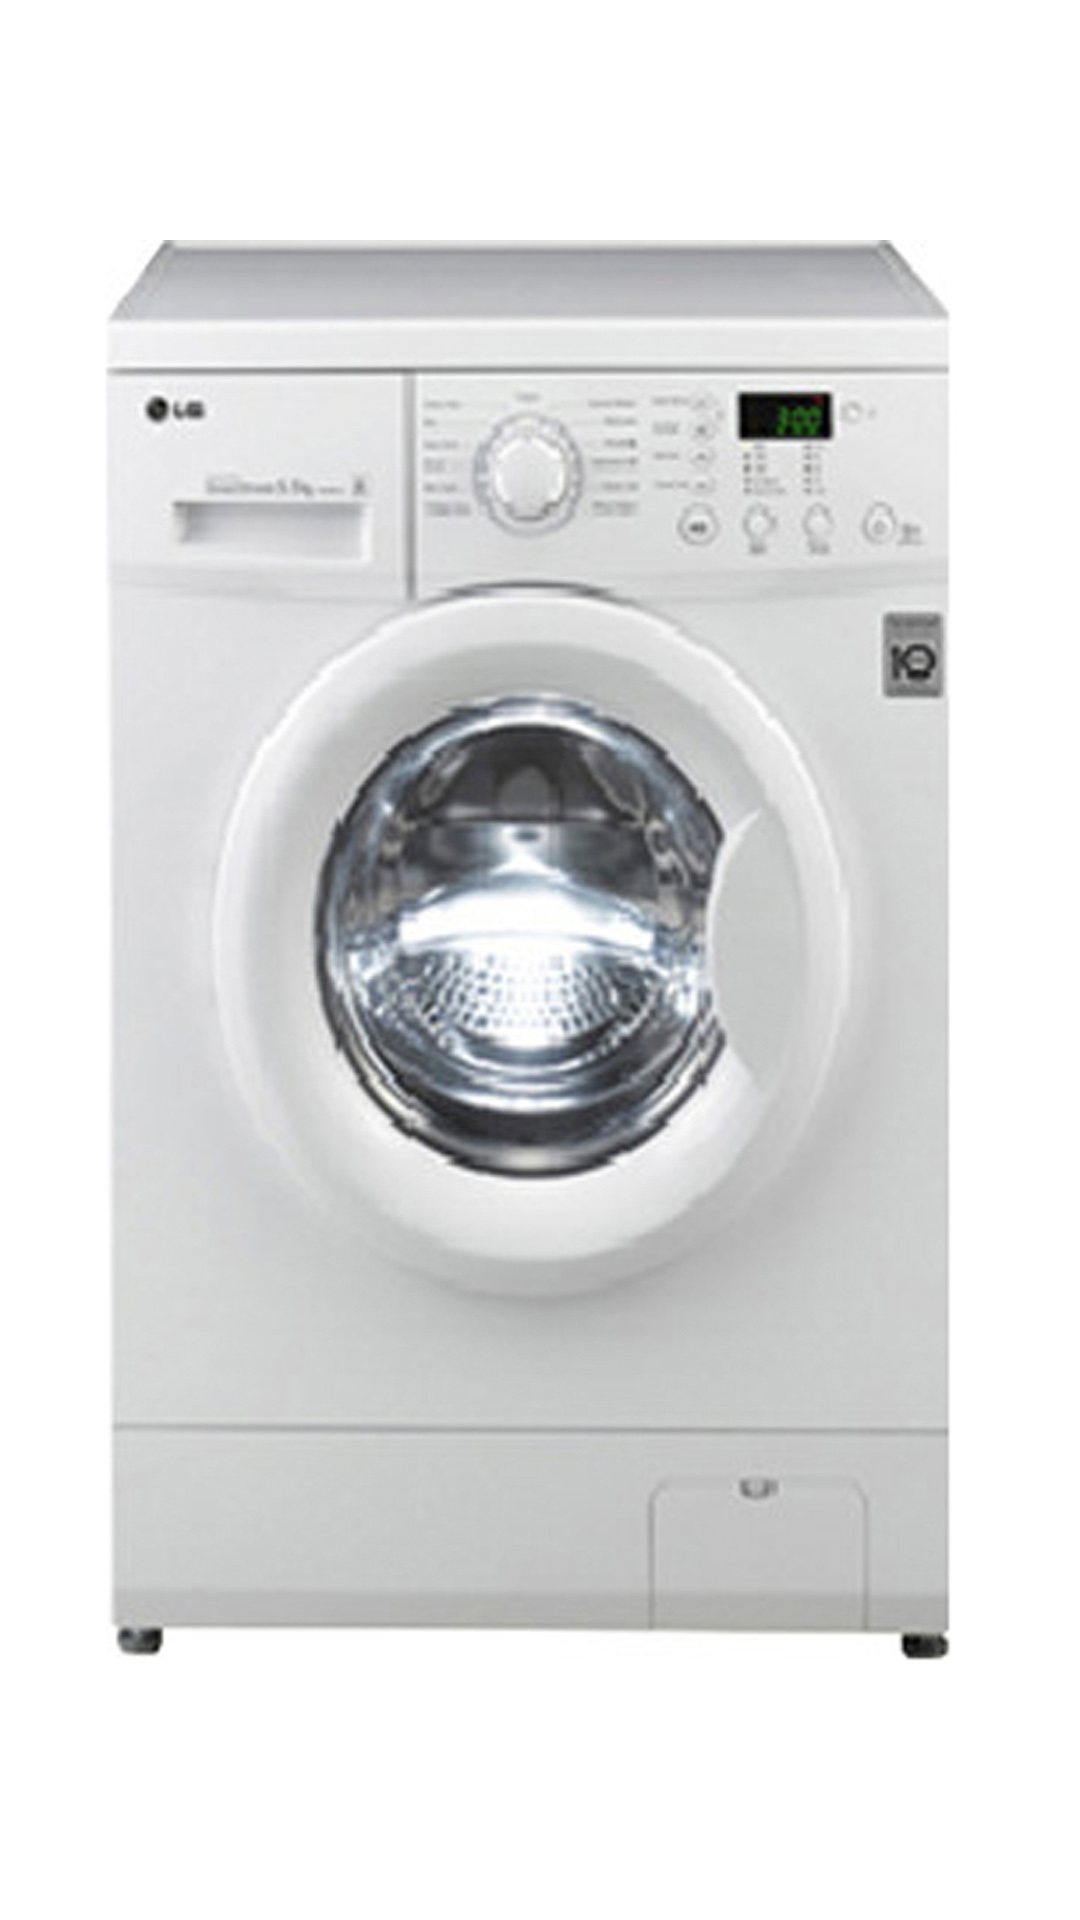 LG F7091MDL2 Fully Automatic Front Loading 5.5 Kg Washing Machine